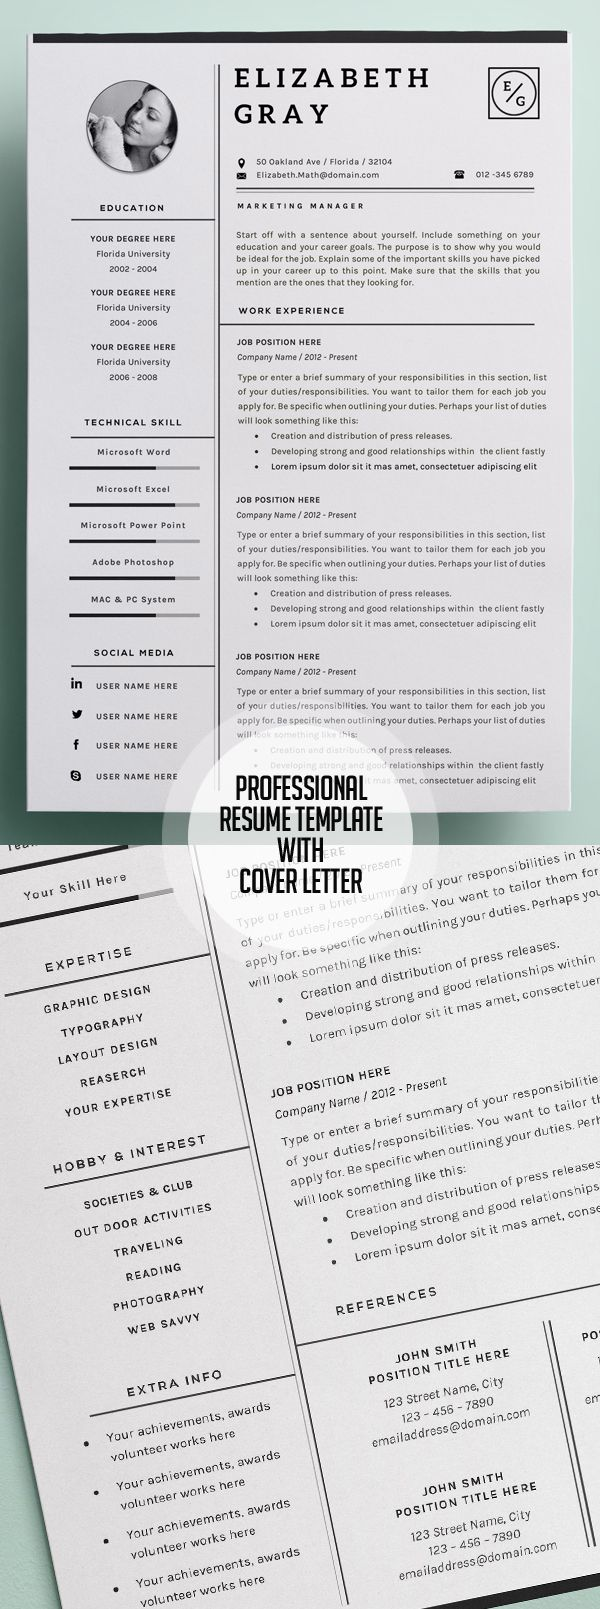 Opposenewapstandardsus  Fascinating  Resume Ideas On Pinterest  Resume Resume Templates And  With Inspiring Professional And Modern Resume Template With Page Cover Cvtemplate With Beautiful Resume Objective For Customer Service Also Student Resumes In Addition Another Word For Resume And Cover Letter Vs Resume As Well As Google Resume Template Additionally Write My Resume From Pinterestcom With Opposenewapstandardsus  Inspiring  Resume Ideas On Pinterest  Resume Resume Templates And  With Beautiful Professional And Modern Resume Template With Page Cover Cvtemplate And Fascinating Resume Objective For Customer Service Also Student Resumes In Addition Another Word For Resume From Pinterestcom